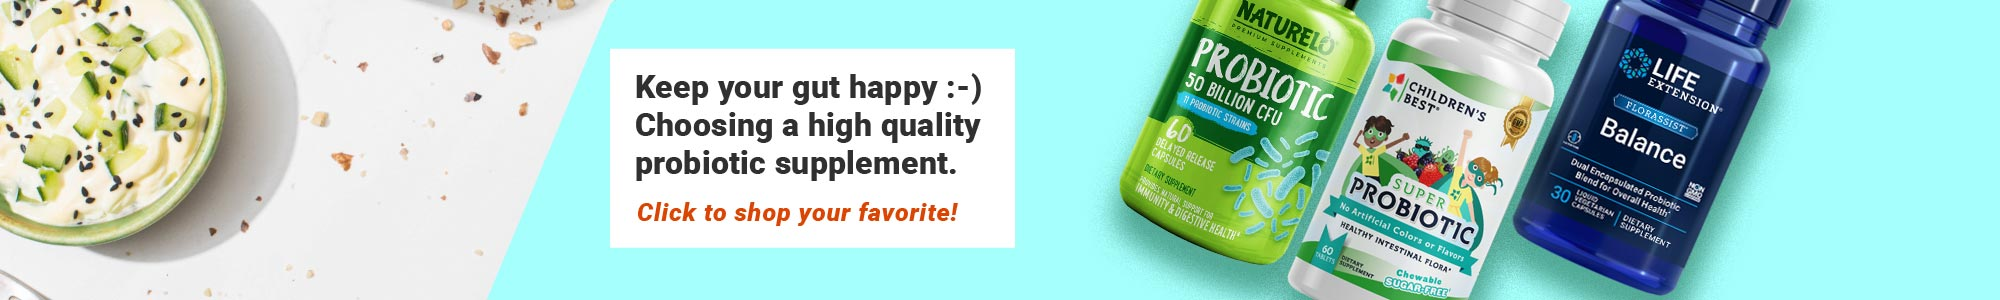 Keep your gut happy Choosing a high quality probiotic supplement. Click to shop your favorite probiotic!